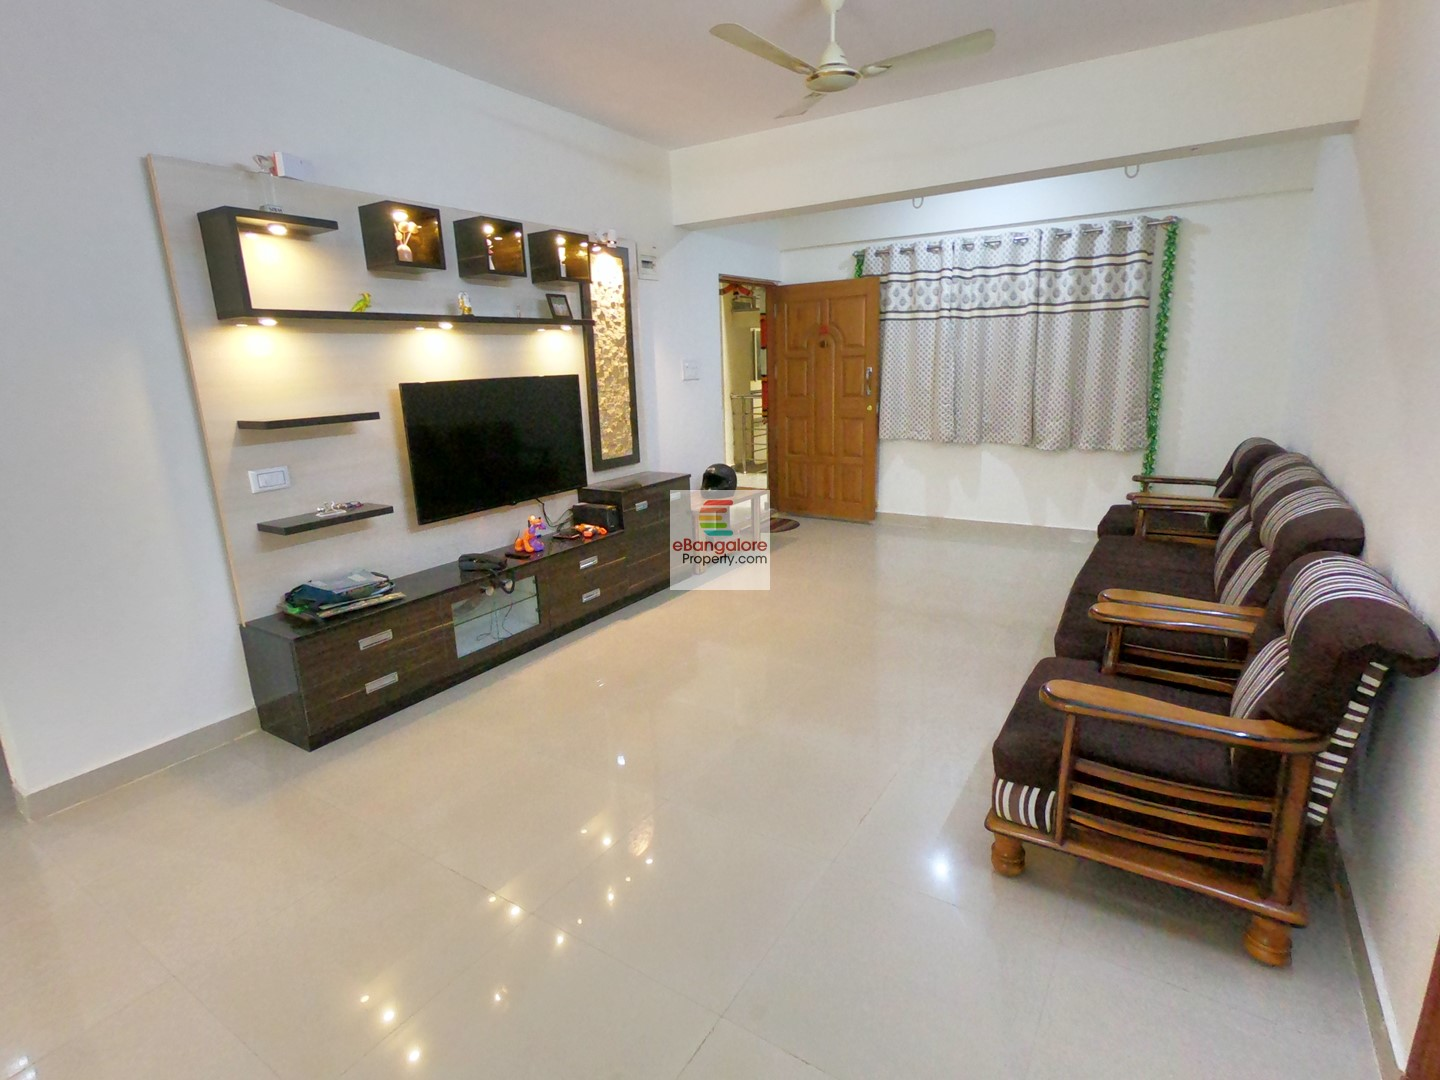 Yelahanka Jakkur – 3BHK Semi-furn East Facing Flat for Sale – With Modern Amenities